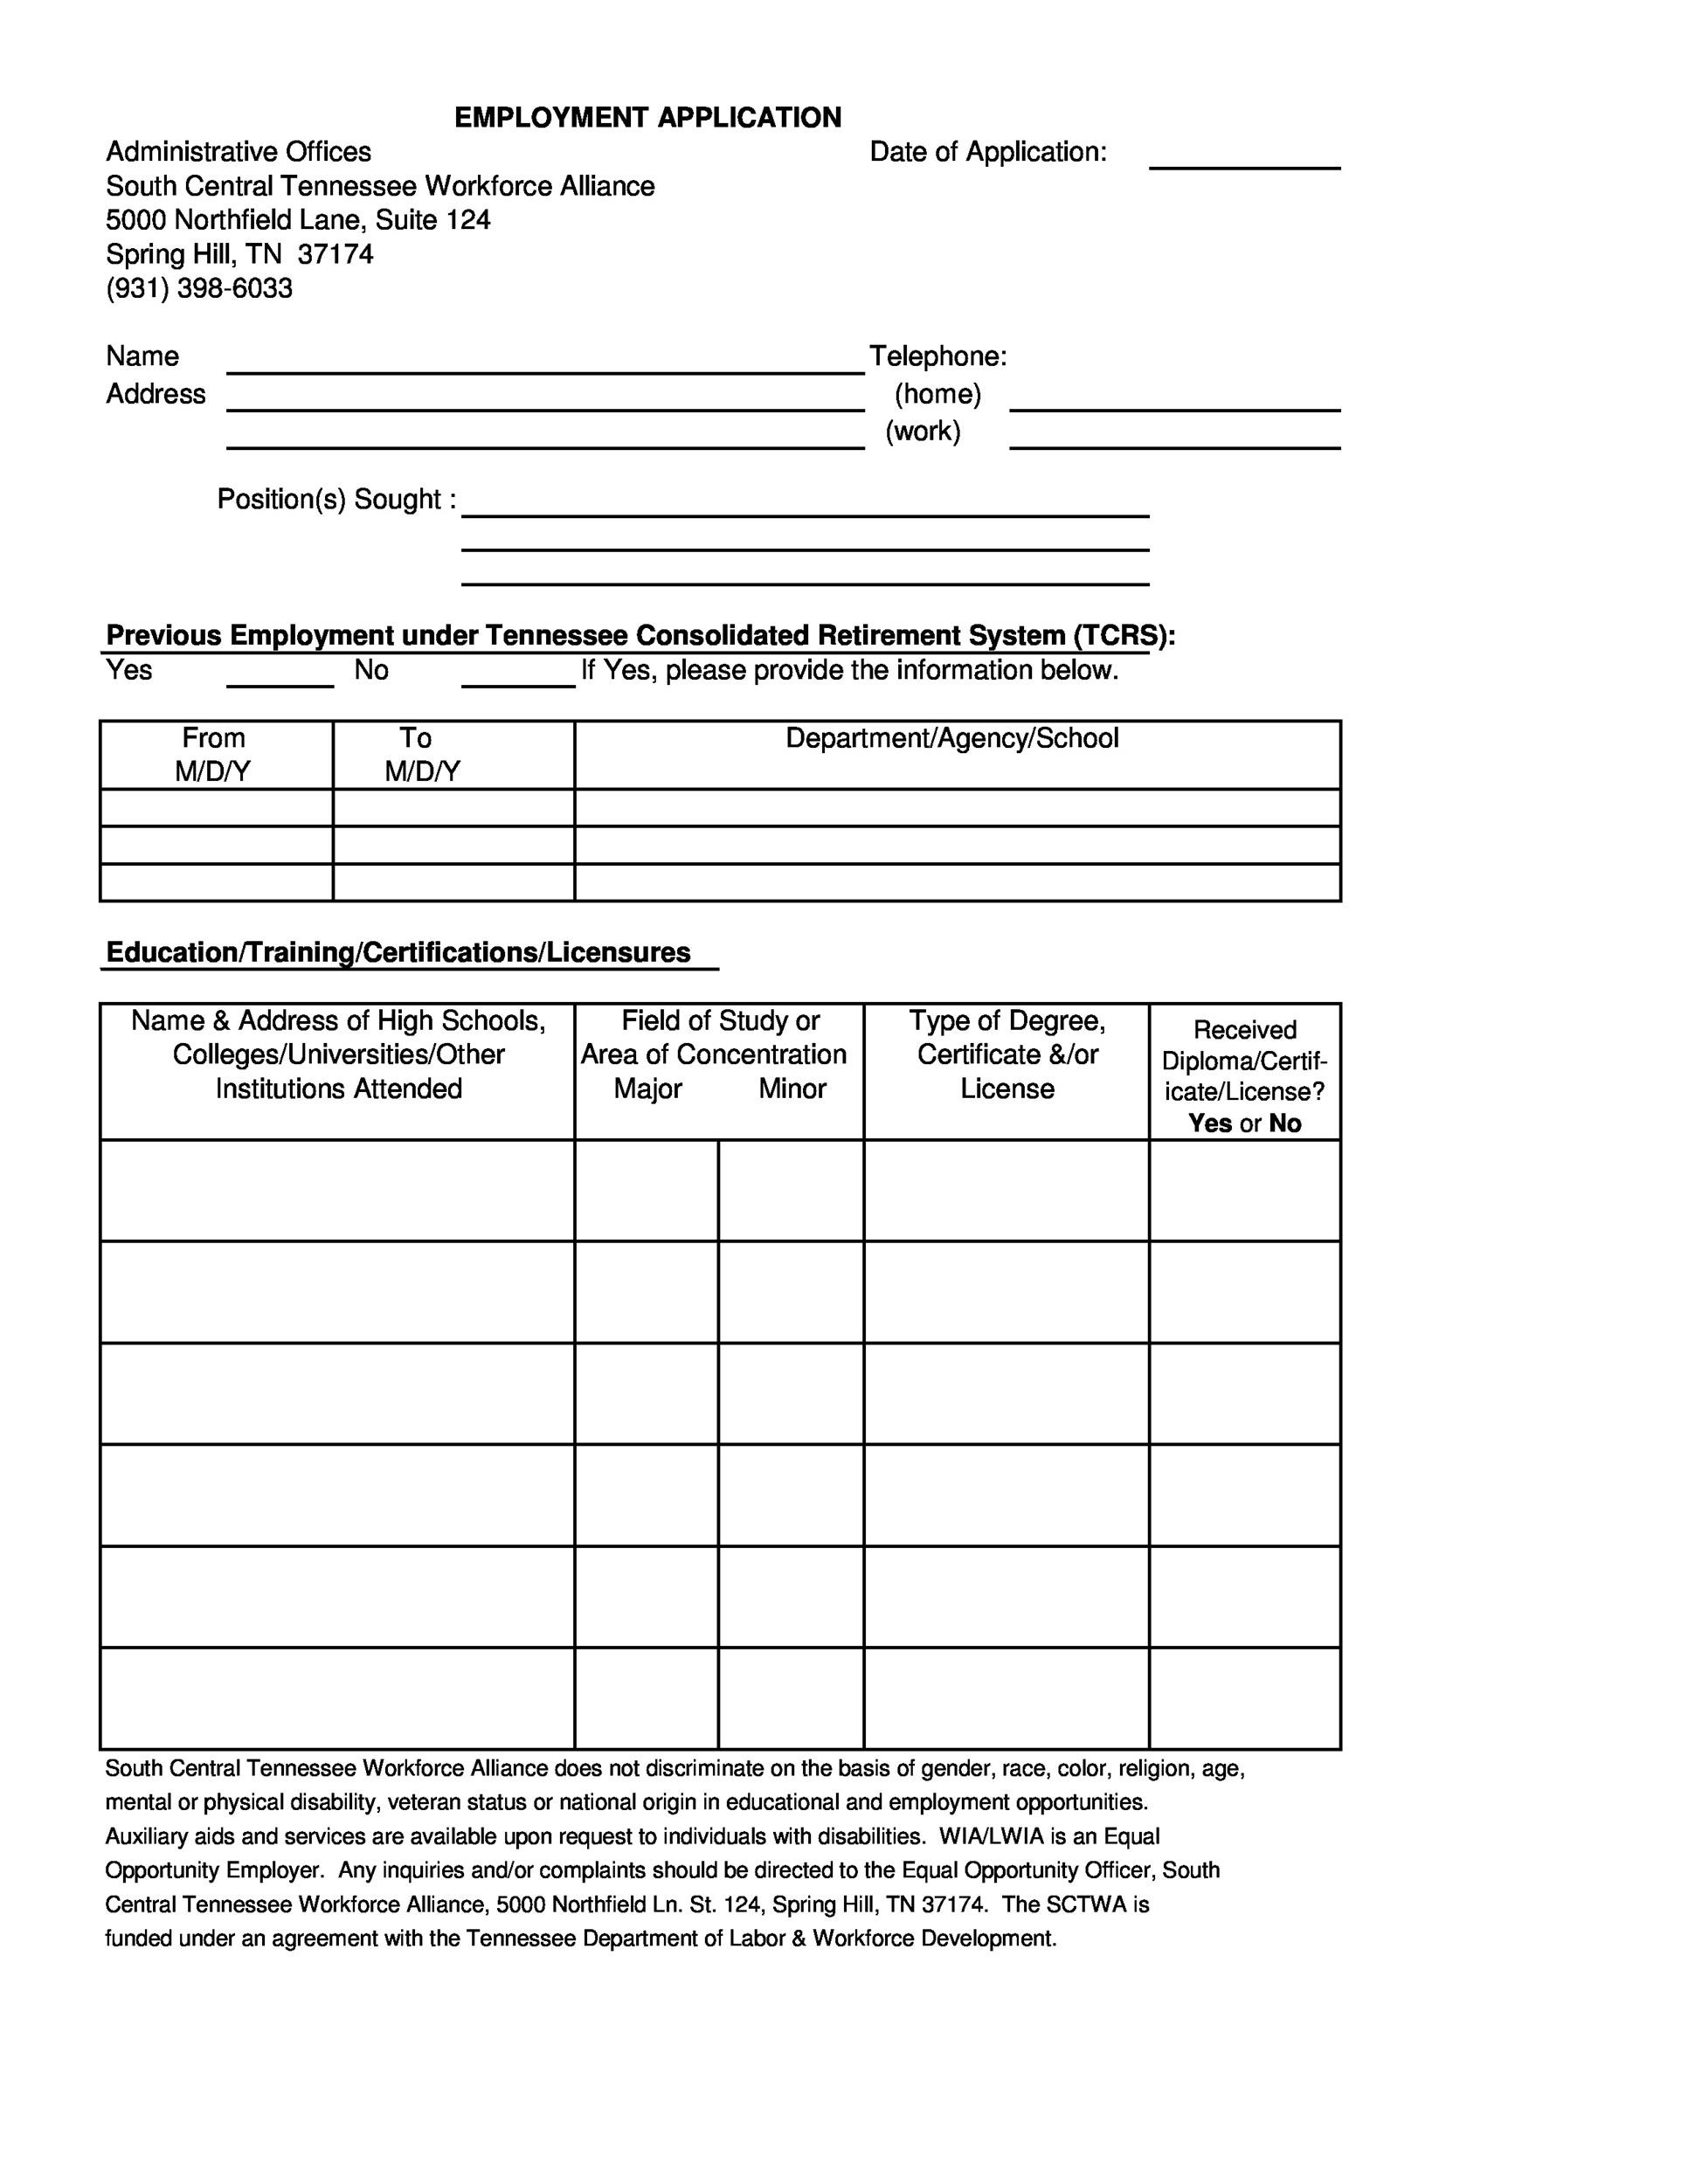 50 free employment job application form templates printable application for employment form thecheapjerseys